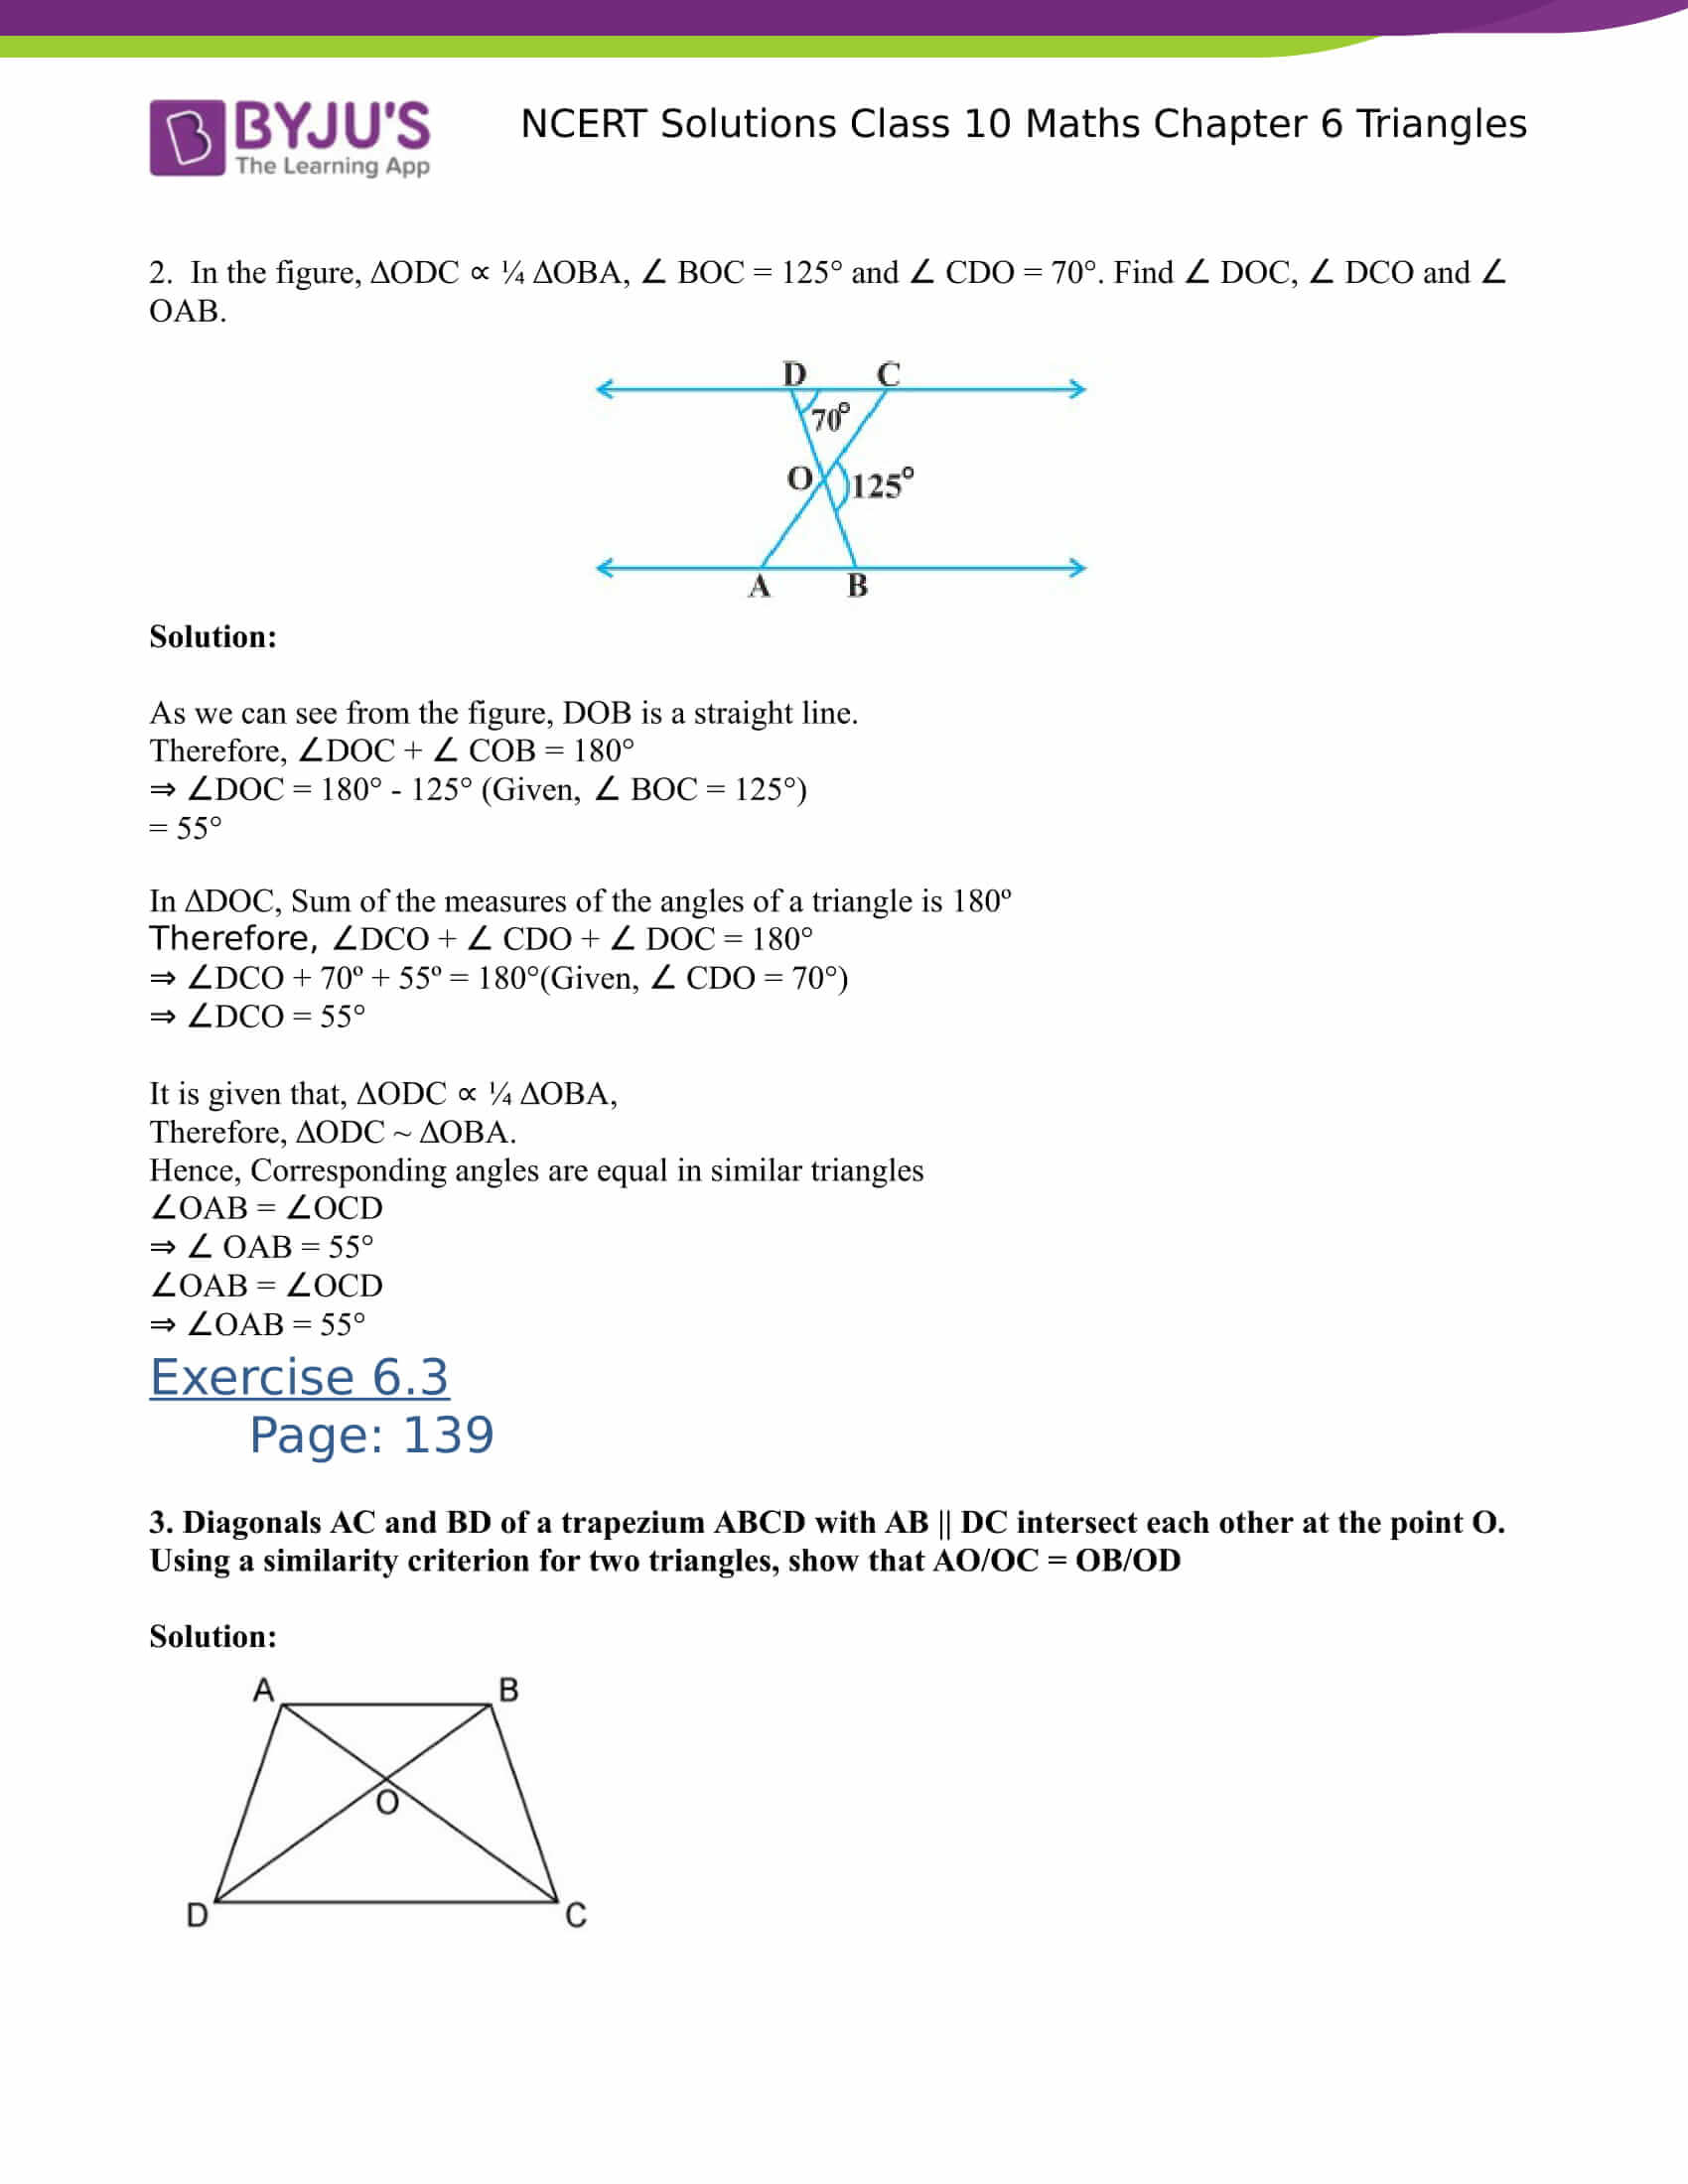 NCERT Solutions for class 10 Maths Chapter 6 Triangles Part 15